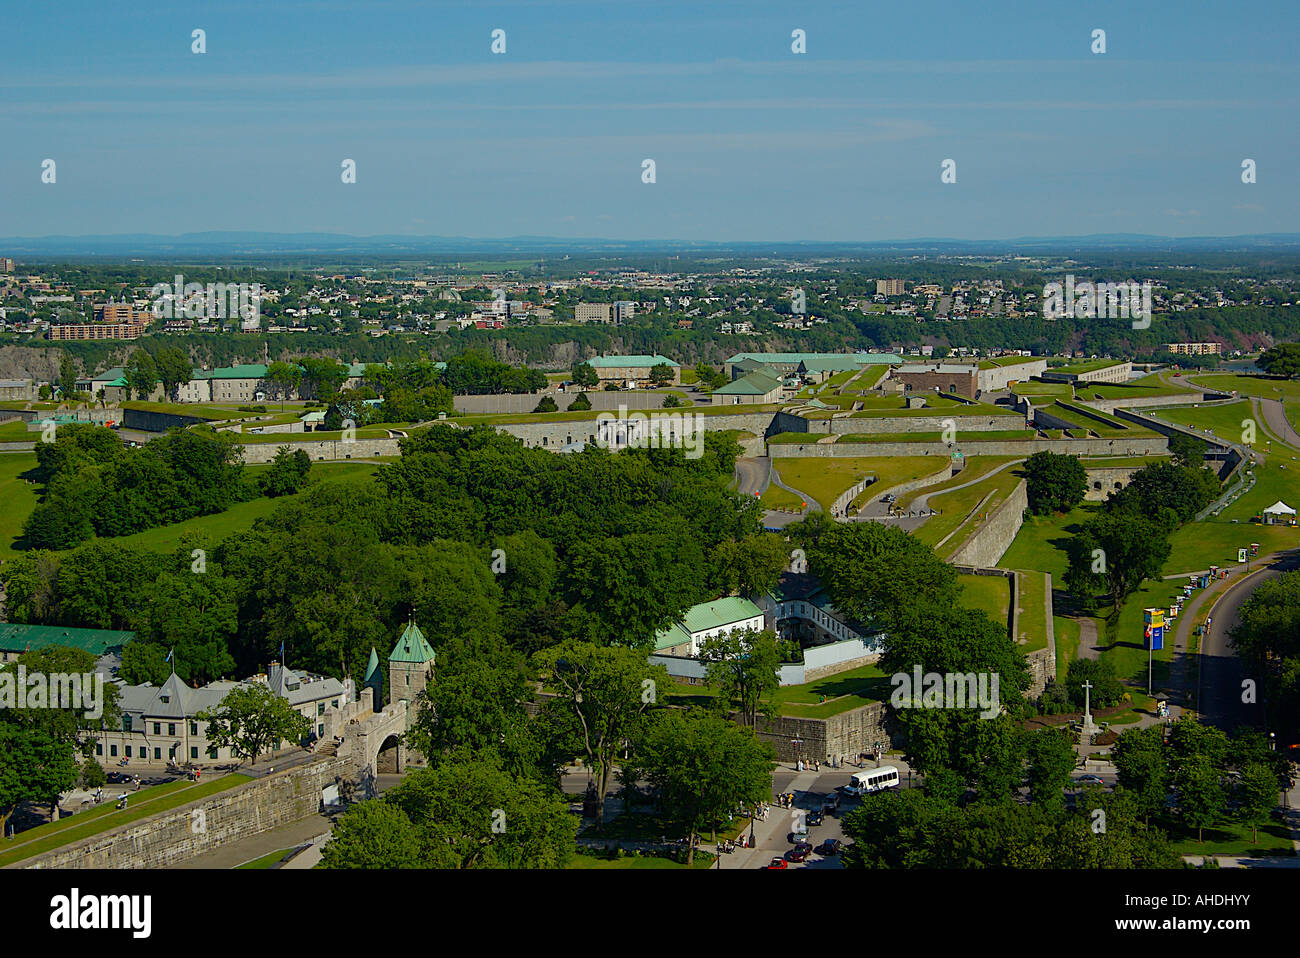 View of the Citadel and walls of Quebec City from atop the Hilton Hotel. - Stock Image